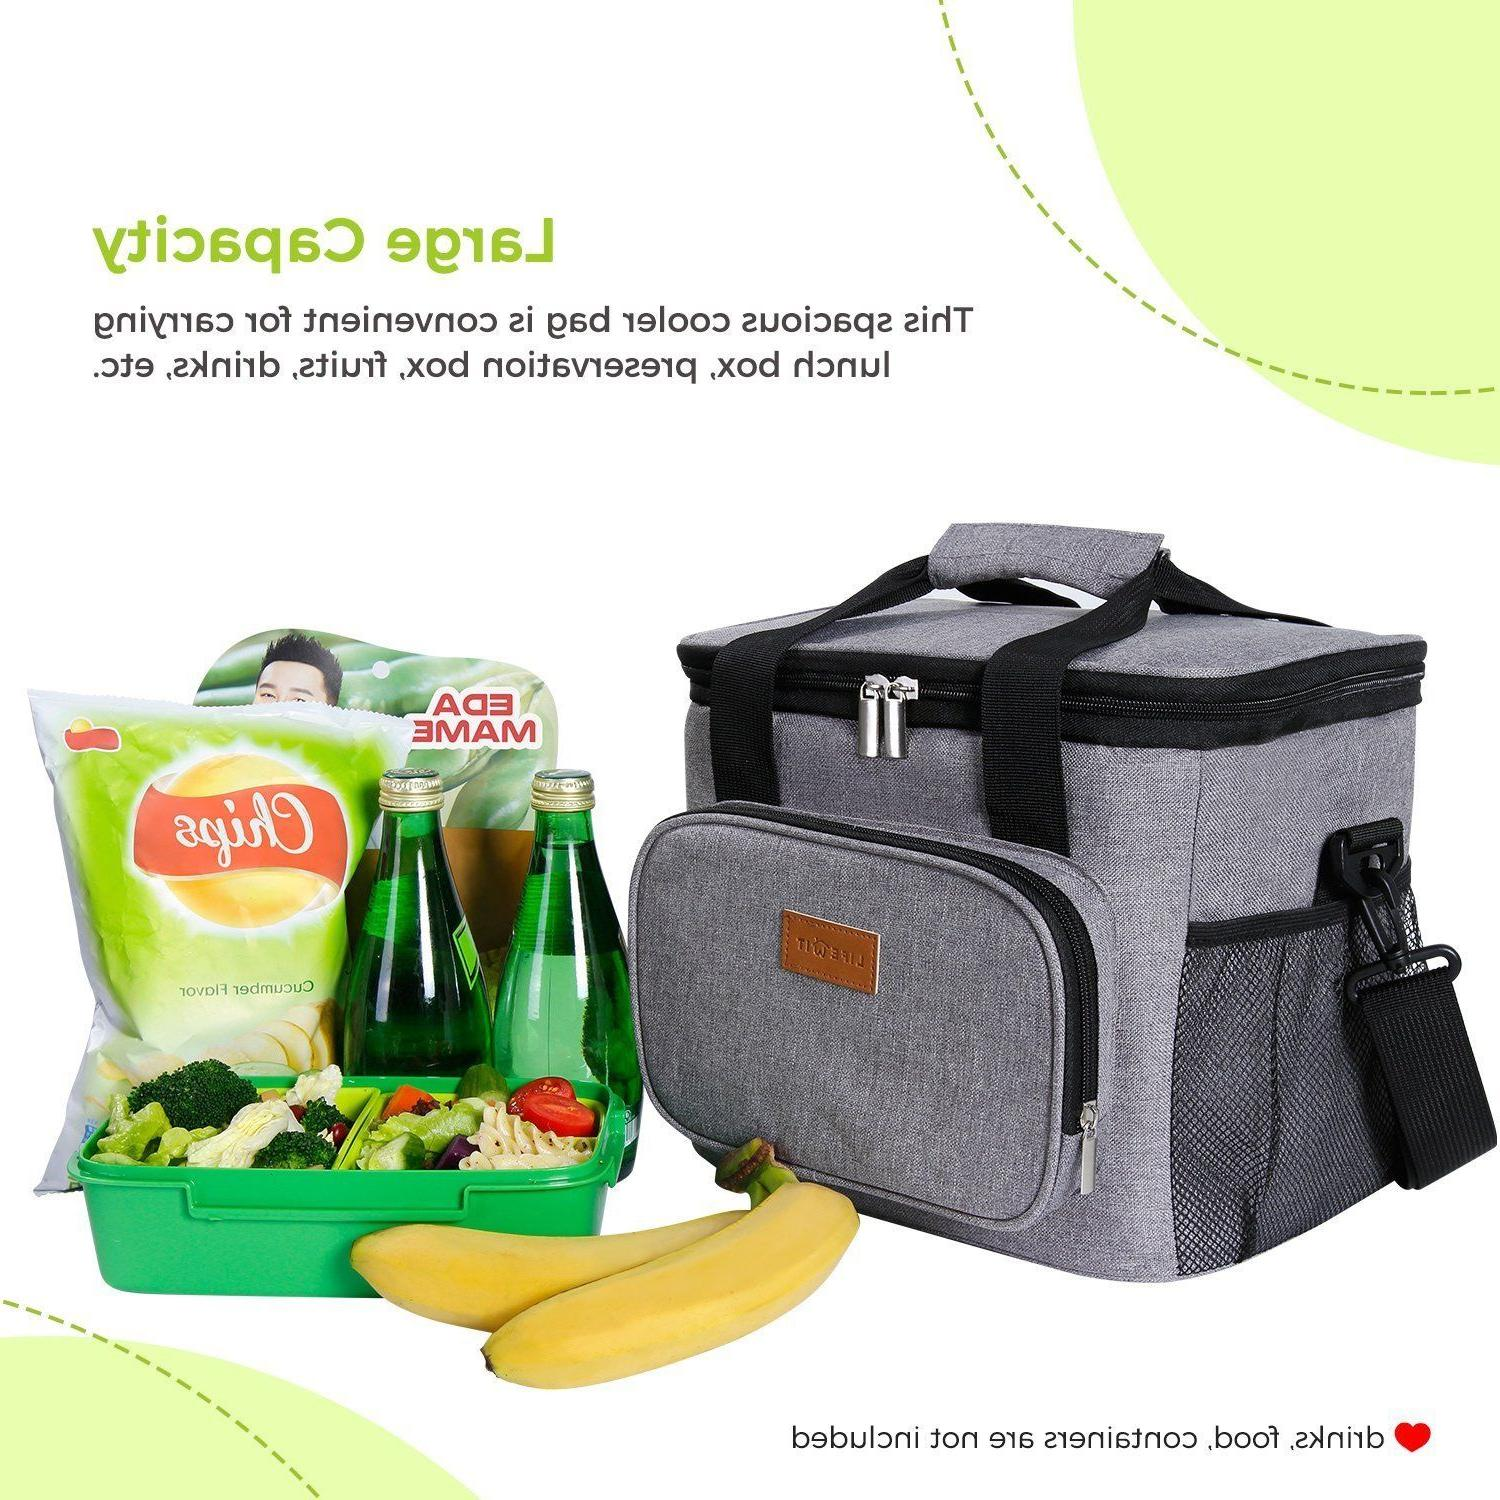 Lifewit Insulated Bag Box Cooler Storage for Beach/Picnic/Camping